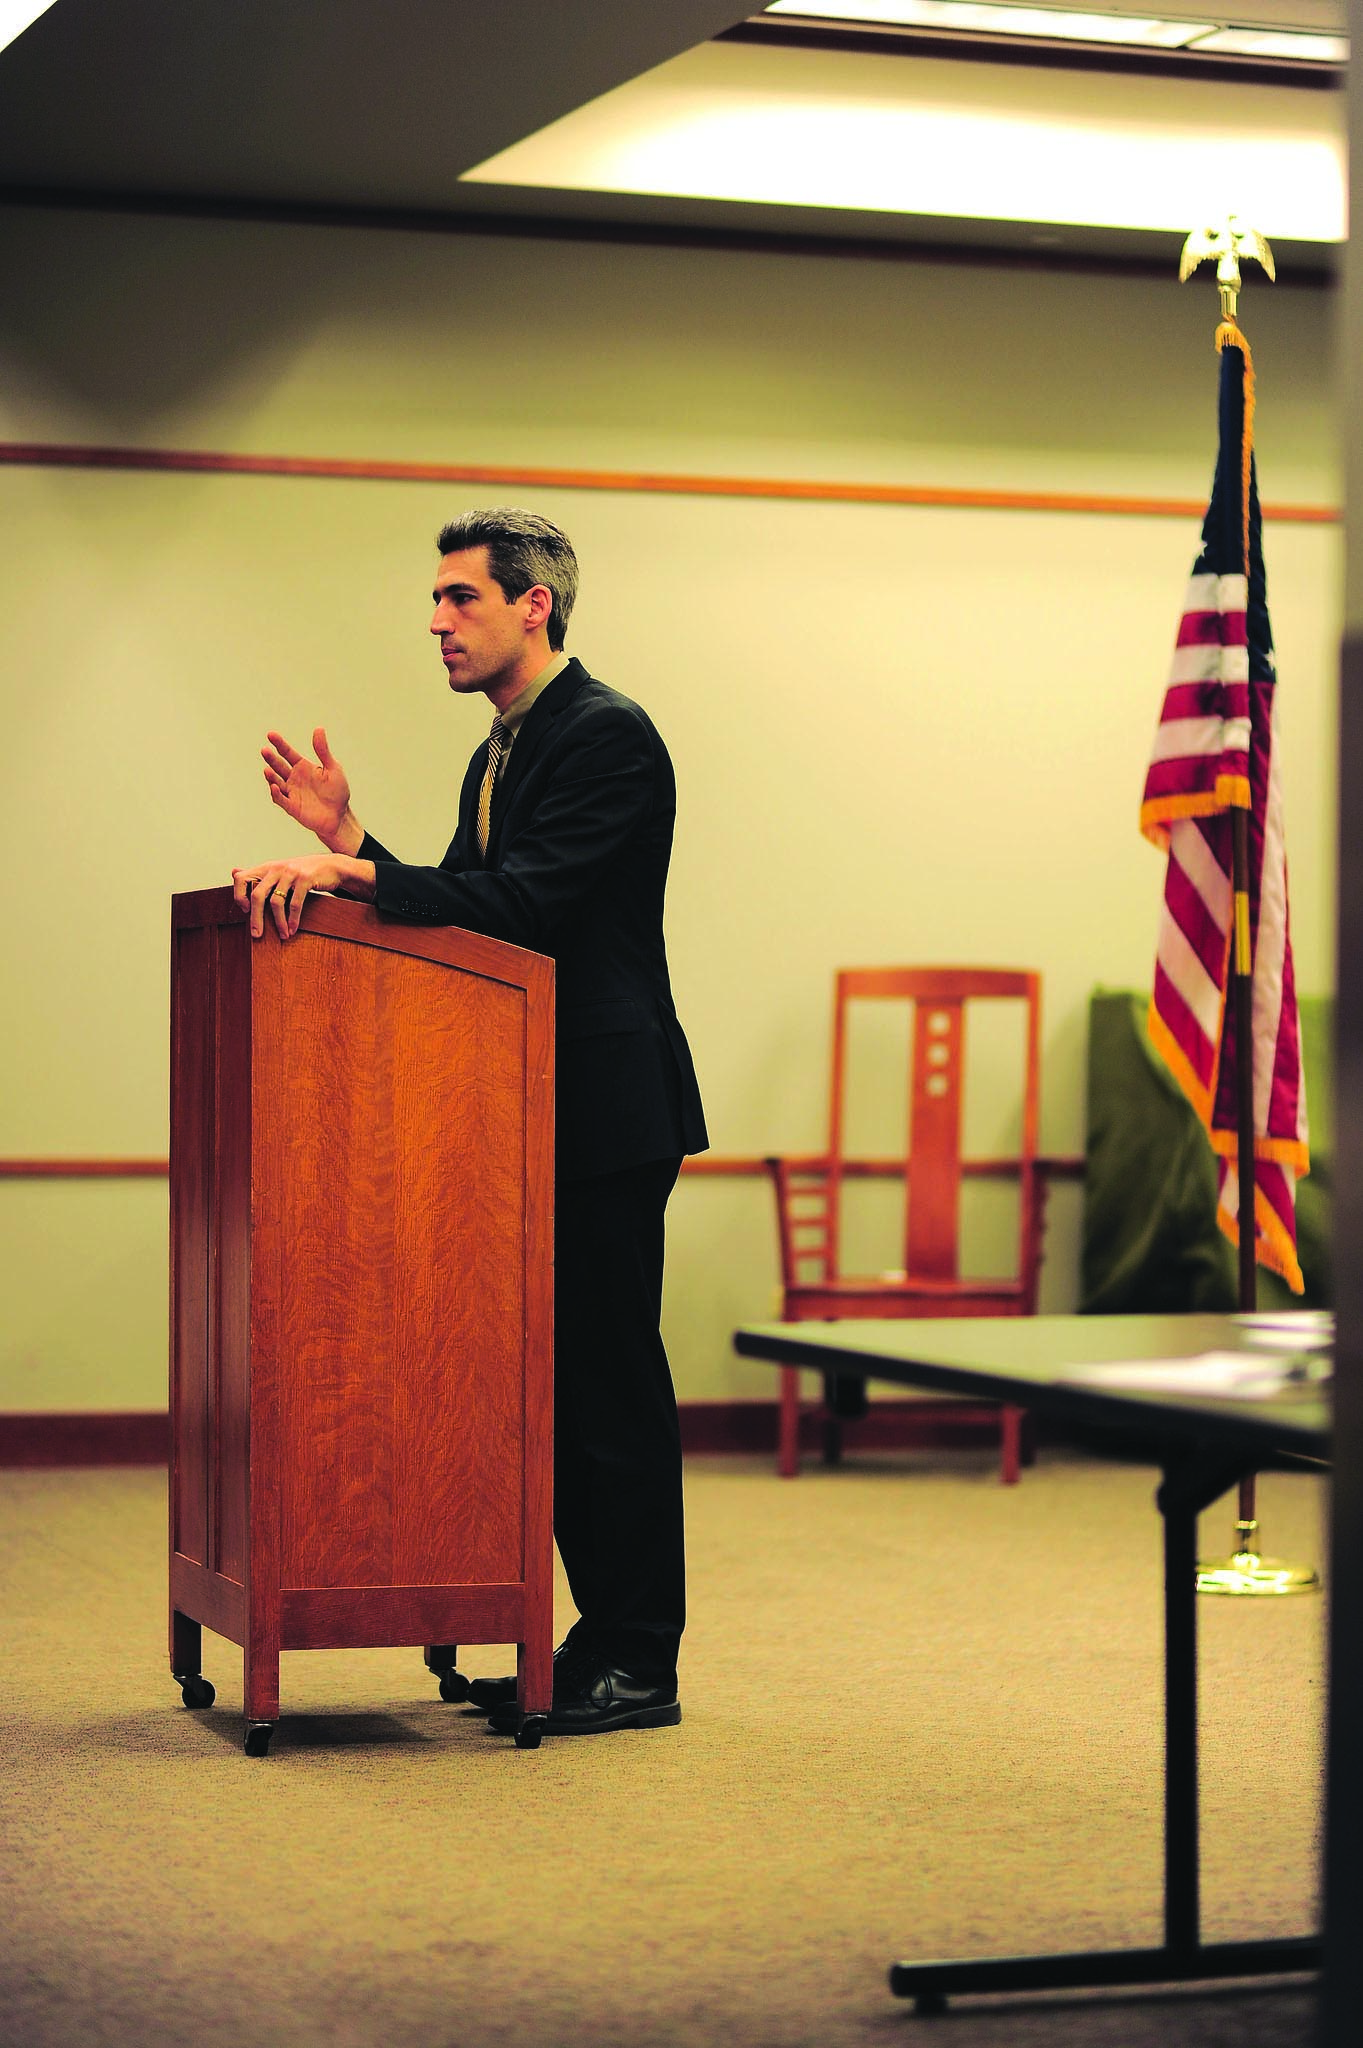 State Sen. Daniel Biss (D-Evanston) hosted a town hall meeting at the Evanston Public Library on Monday. He discussed issues related to income tax and pension reform.